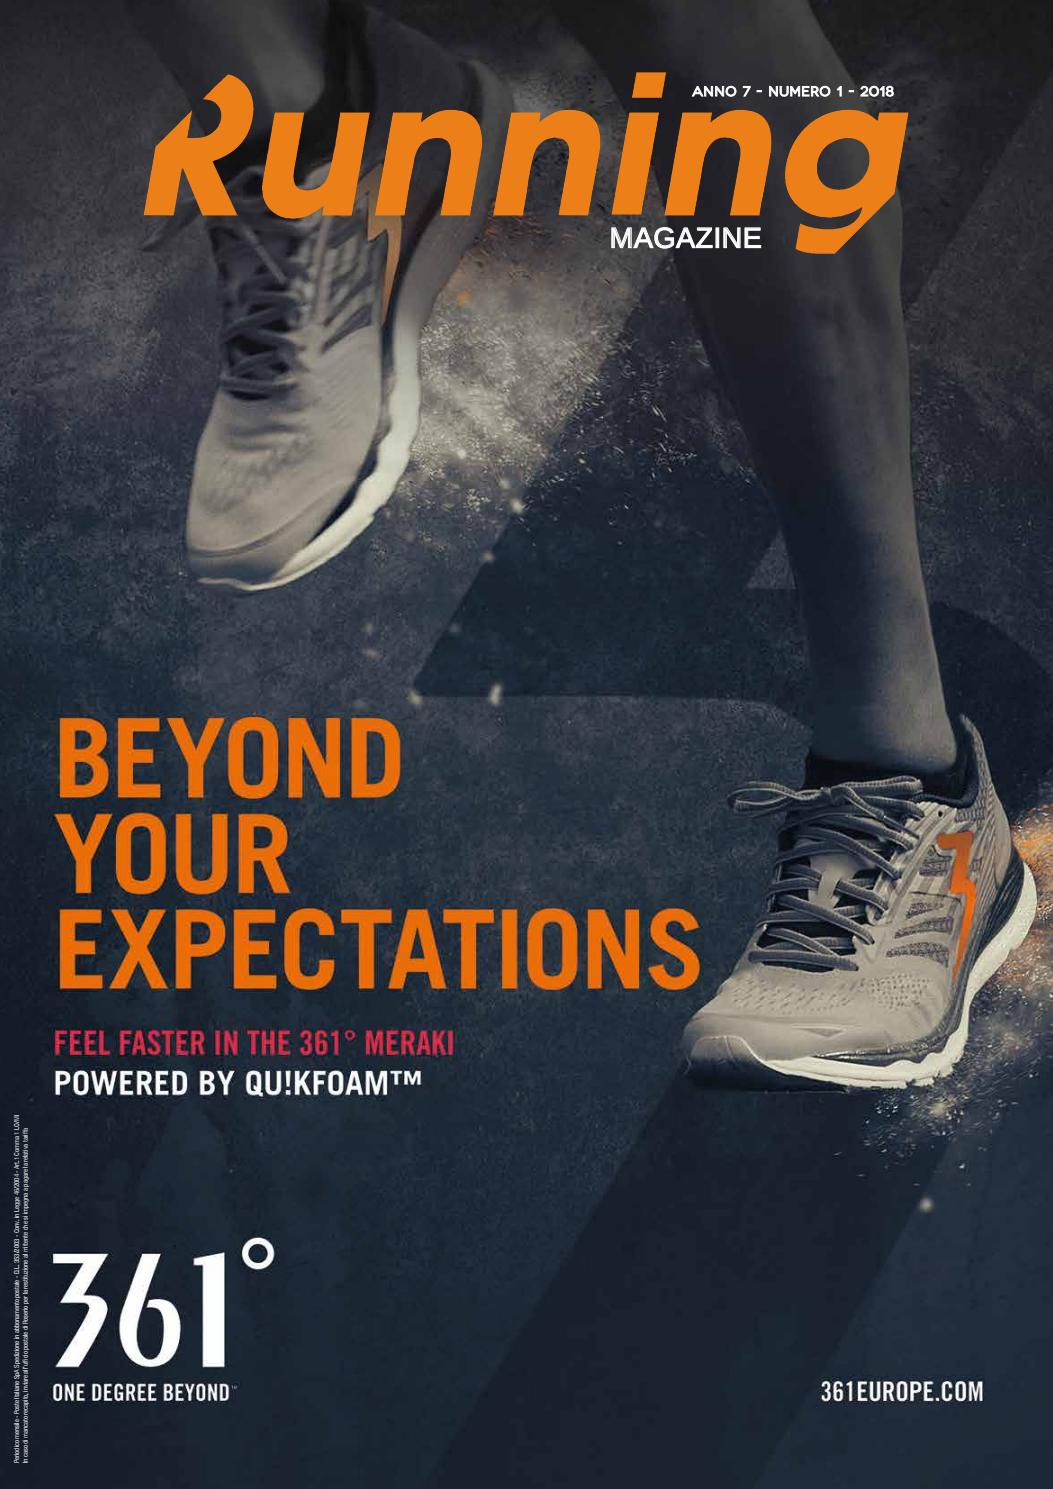 Running Mag 1 2018 by Sport Press - issuu 63a3e68dca7